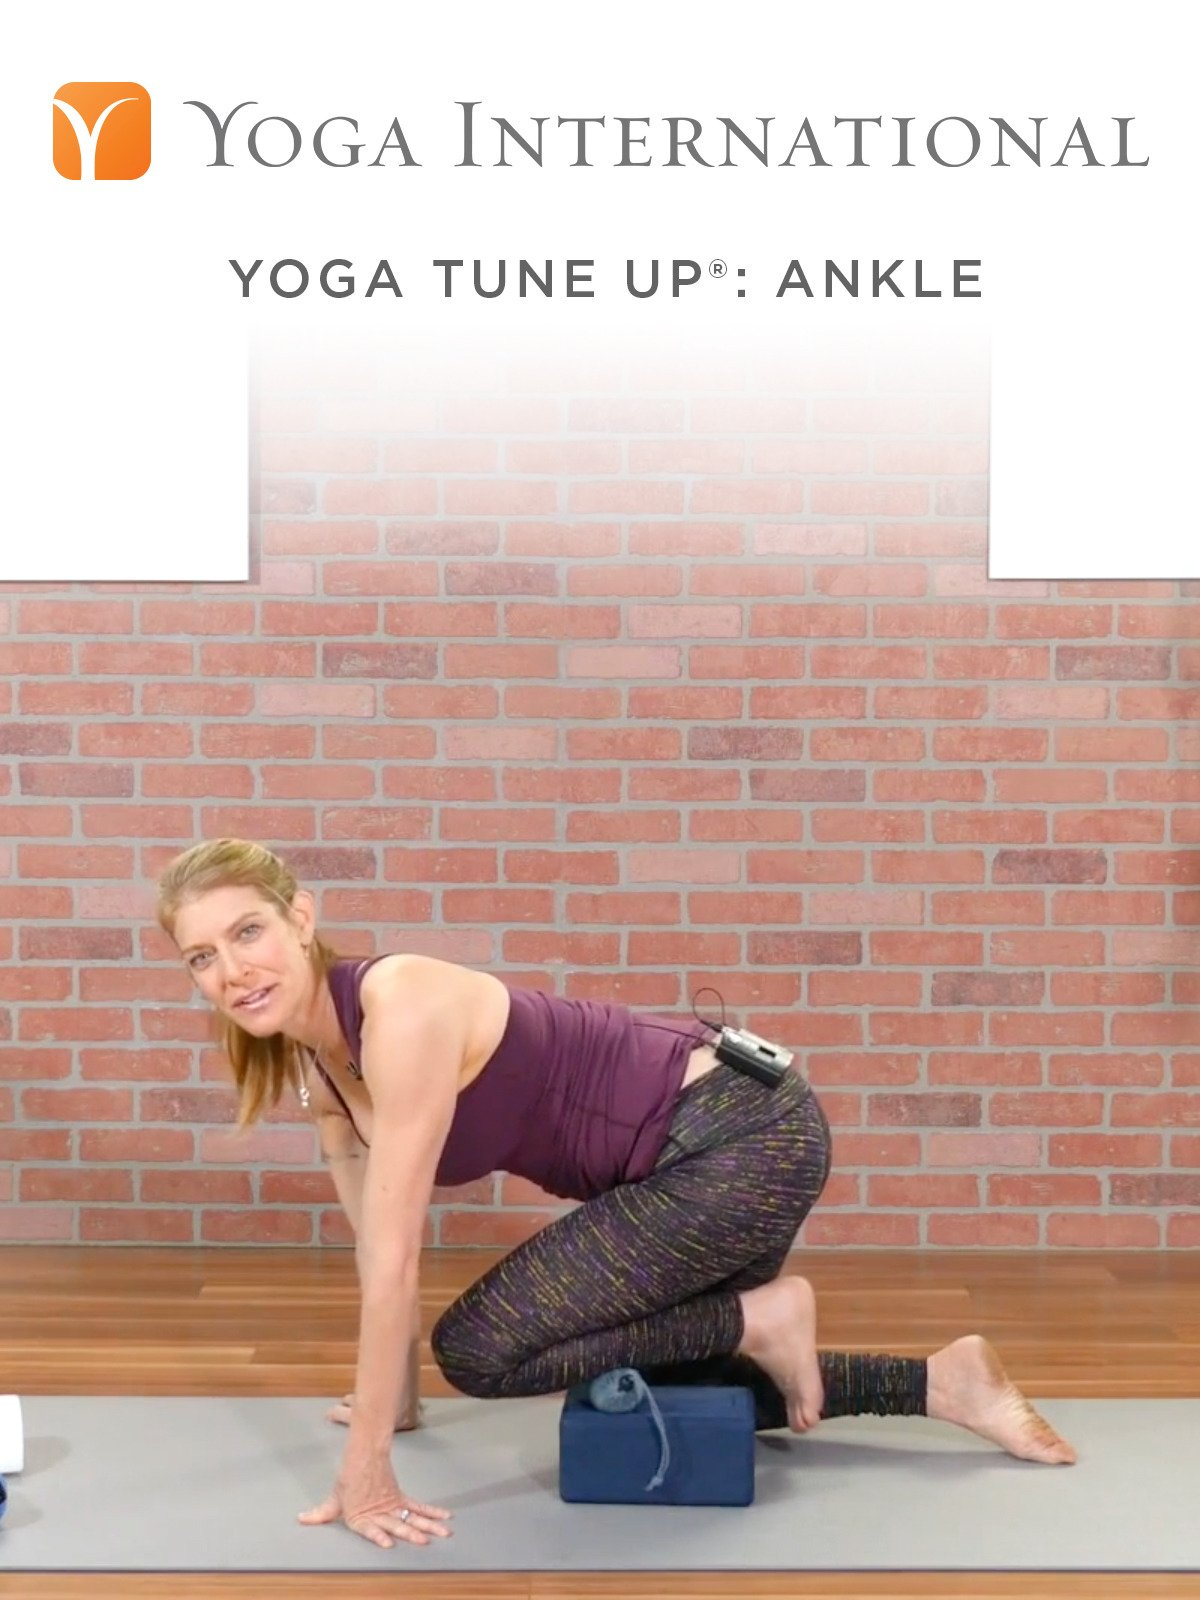 Yoga Tune Up®: Ankle